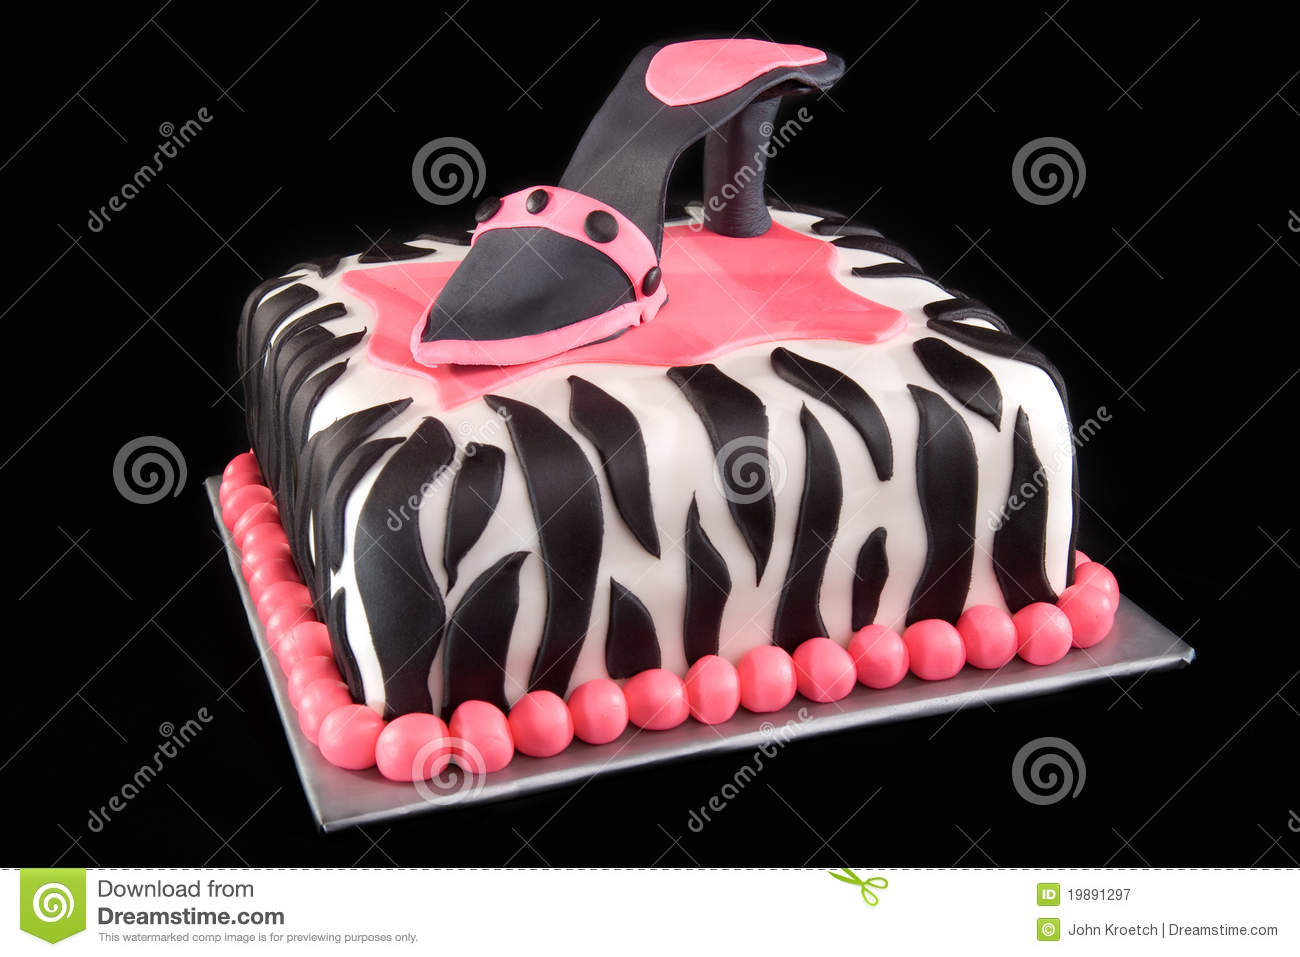 Enjoyable High Heel Shoe On Zebra Print Cake Stock Image Image Of Black Birthday Cards Printable Opercafe Filternl